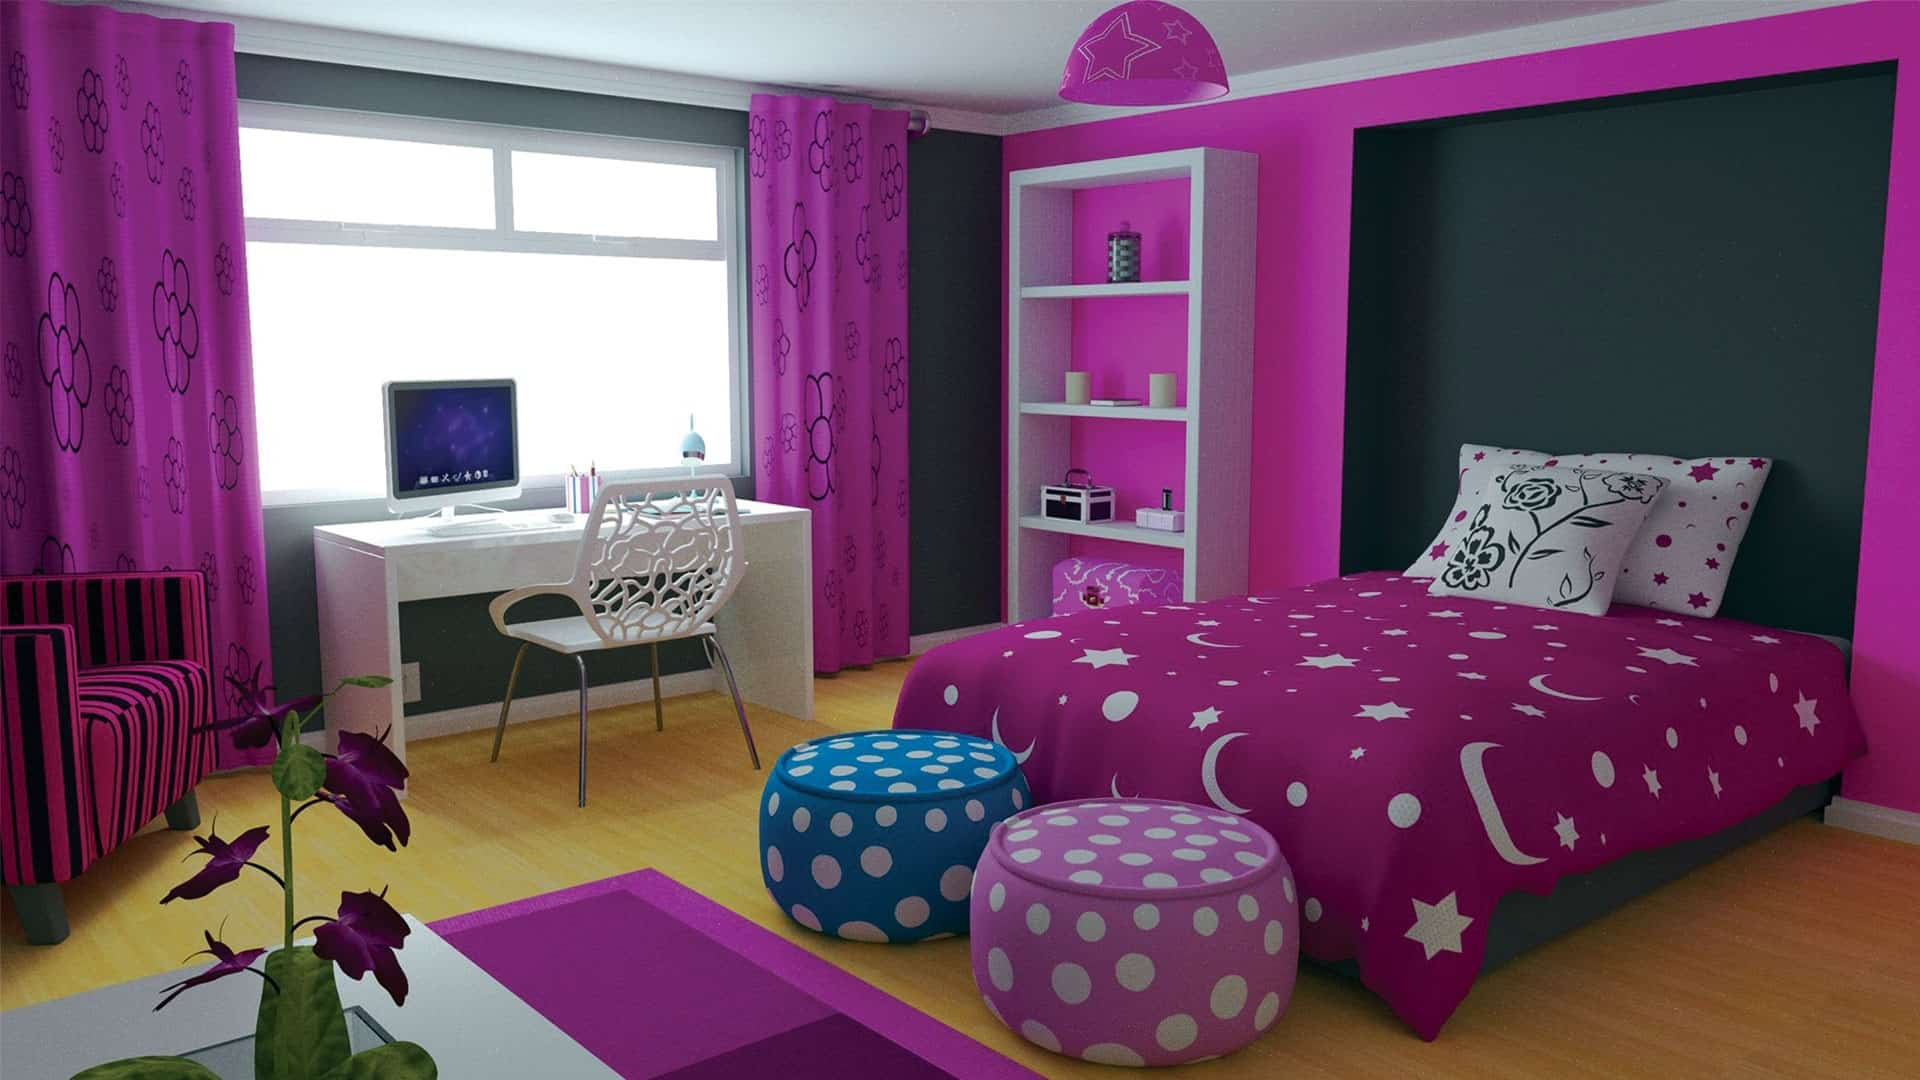 Home decor trends 2017 purple teen room for Good bedroom designs for teenage girls